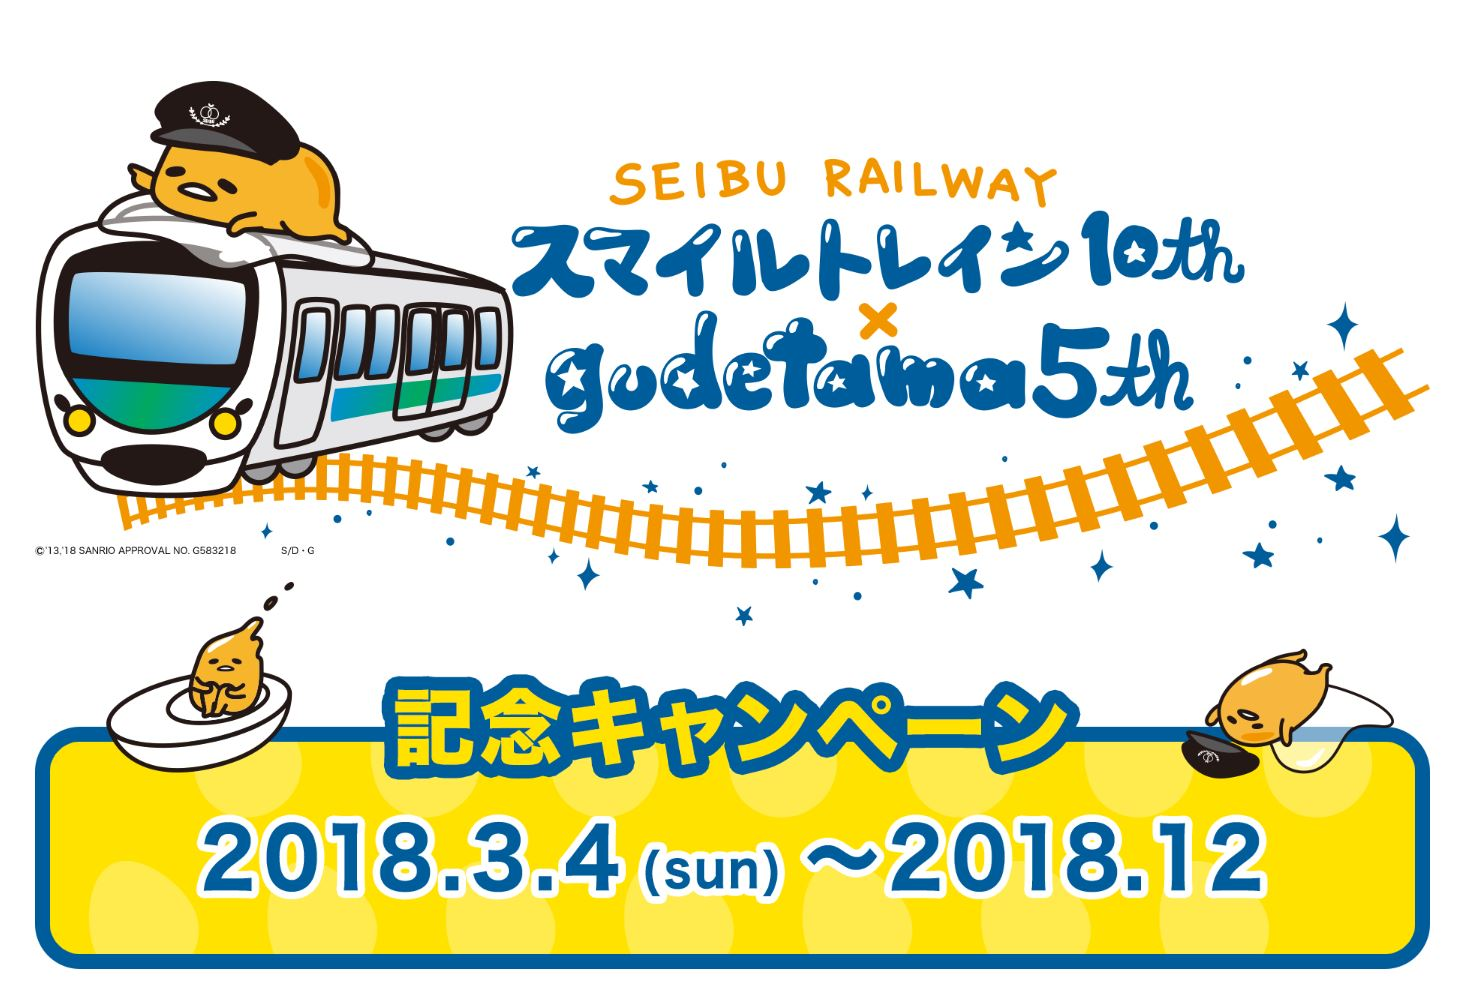 Ready for an egg-cellent ride? All aboard the Gudetama train